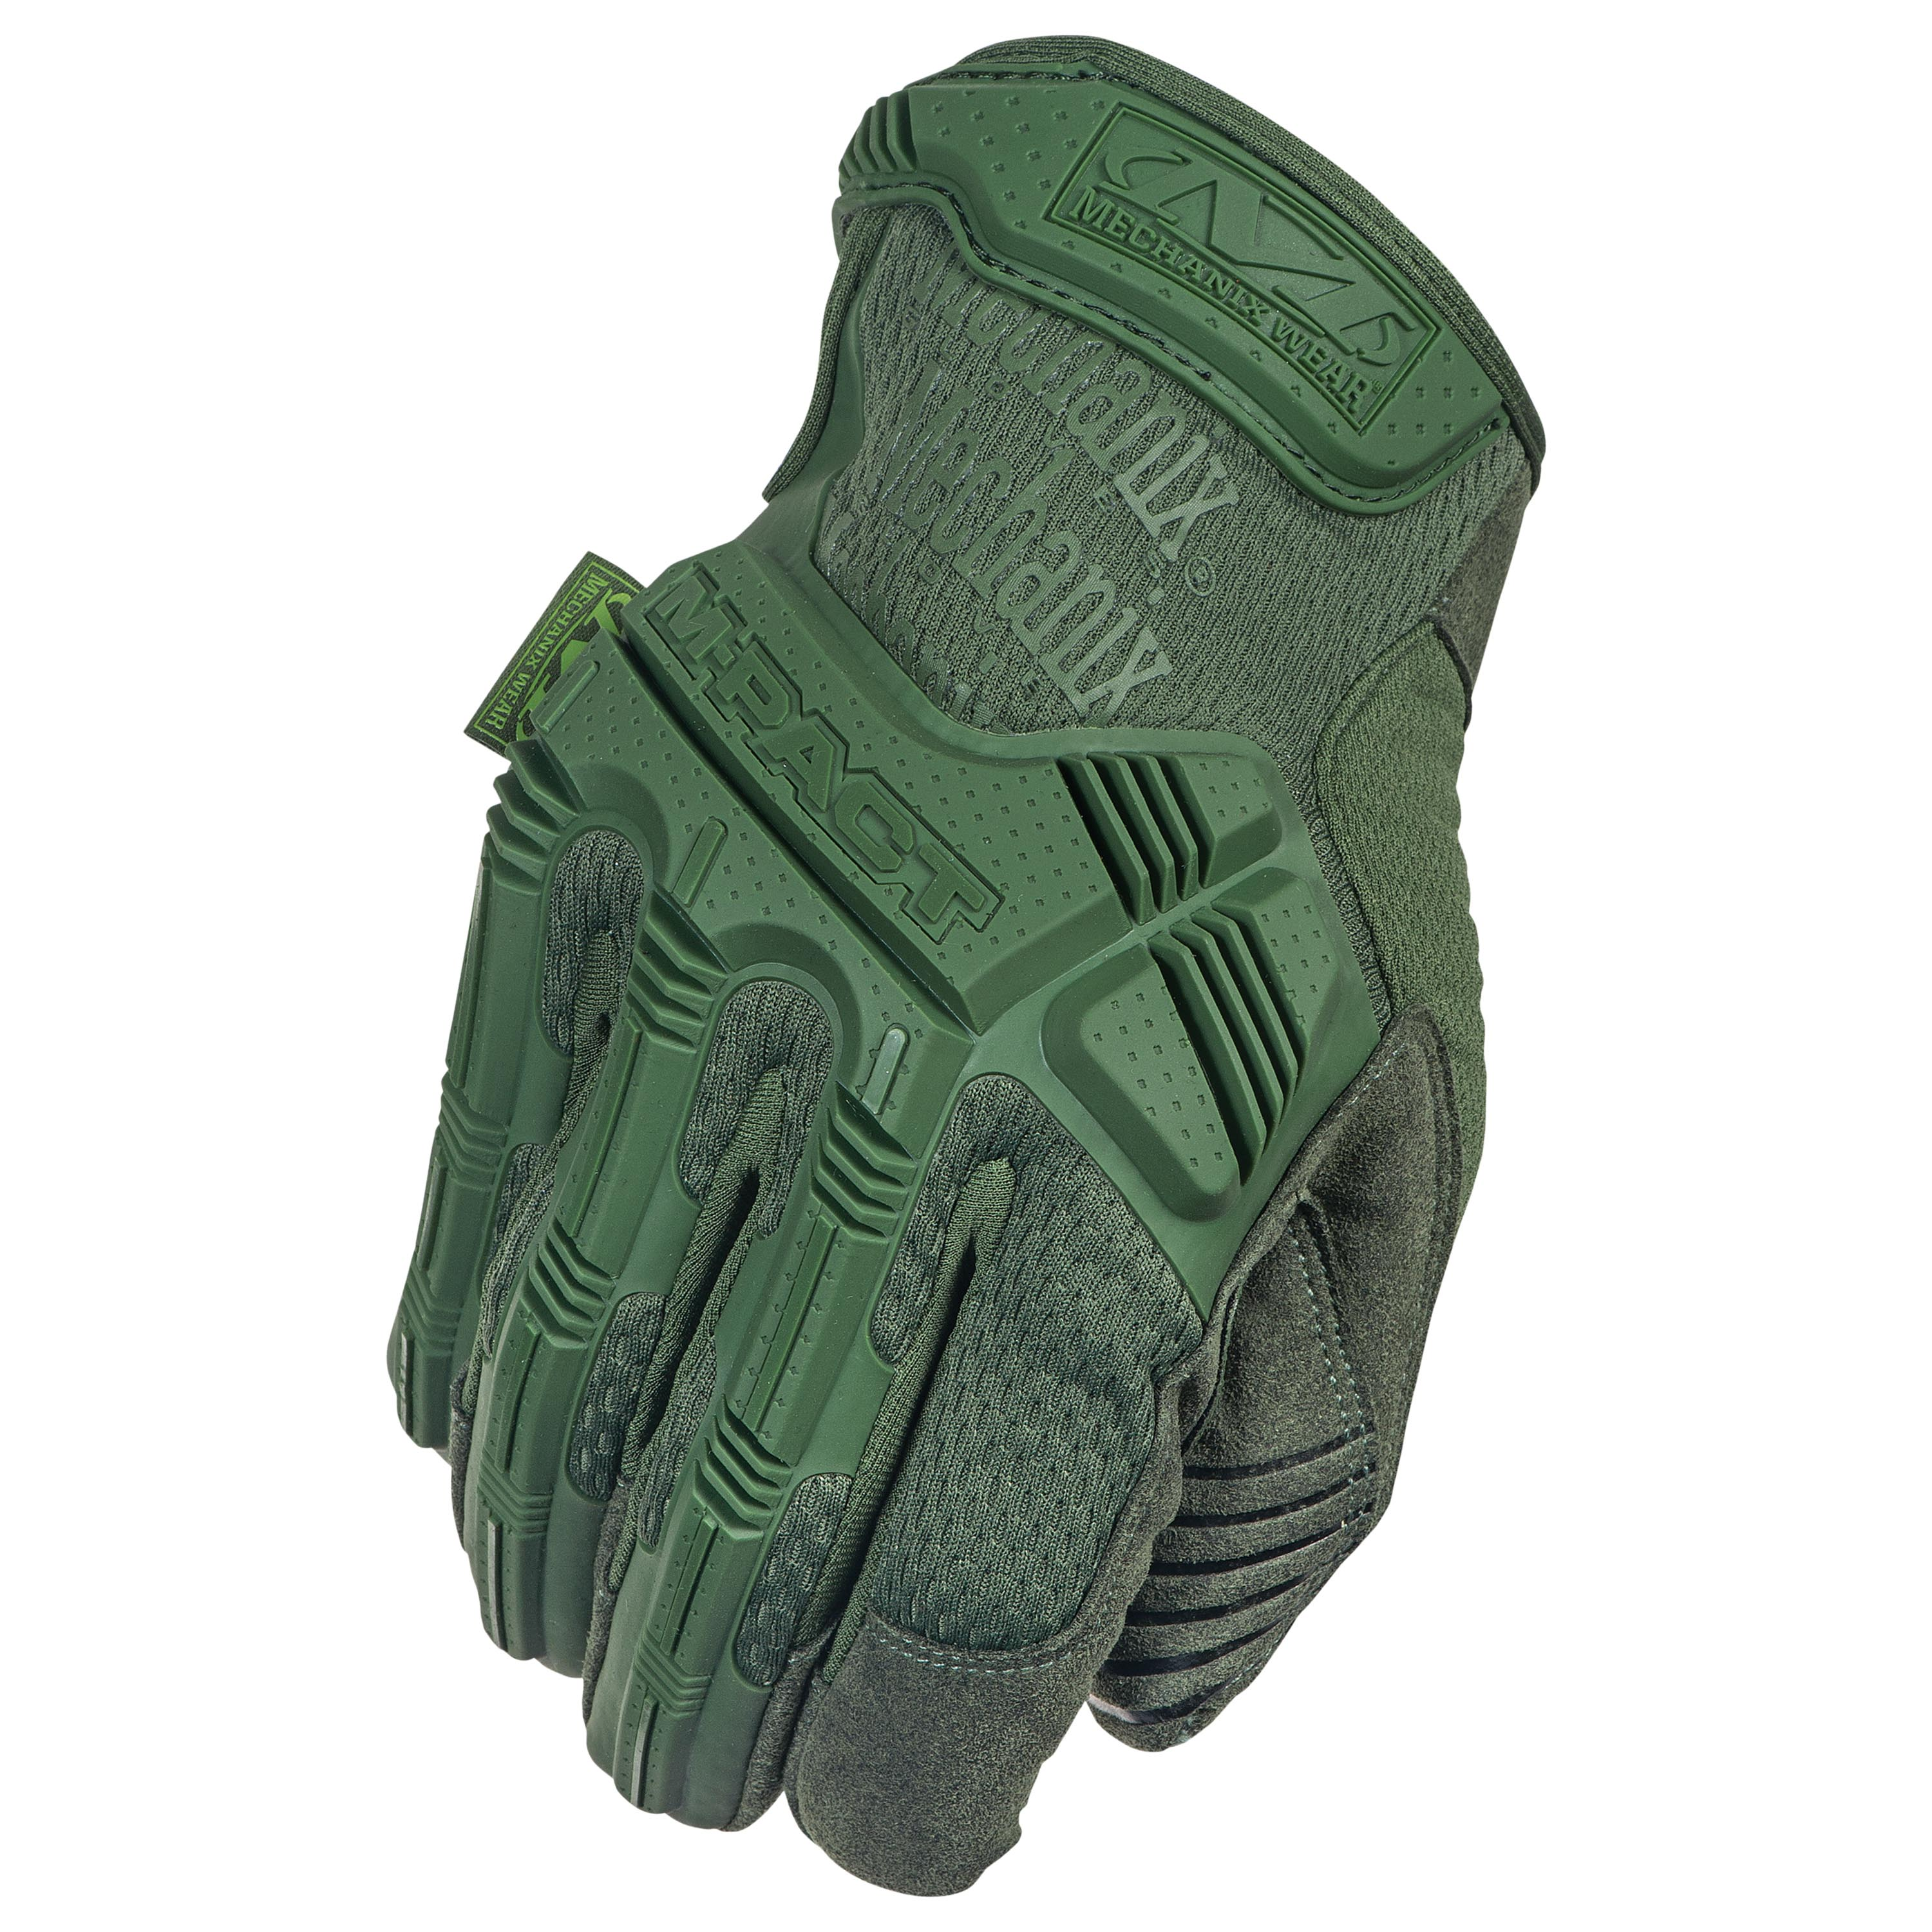 Mechanix Wear Gloves M-Pact OD green